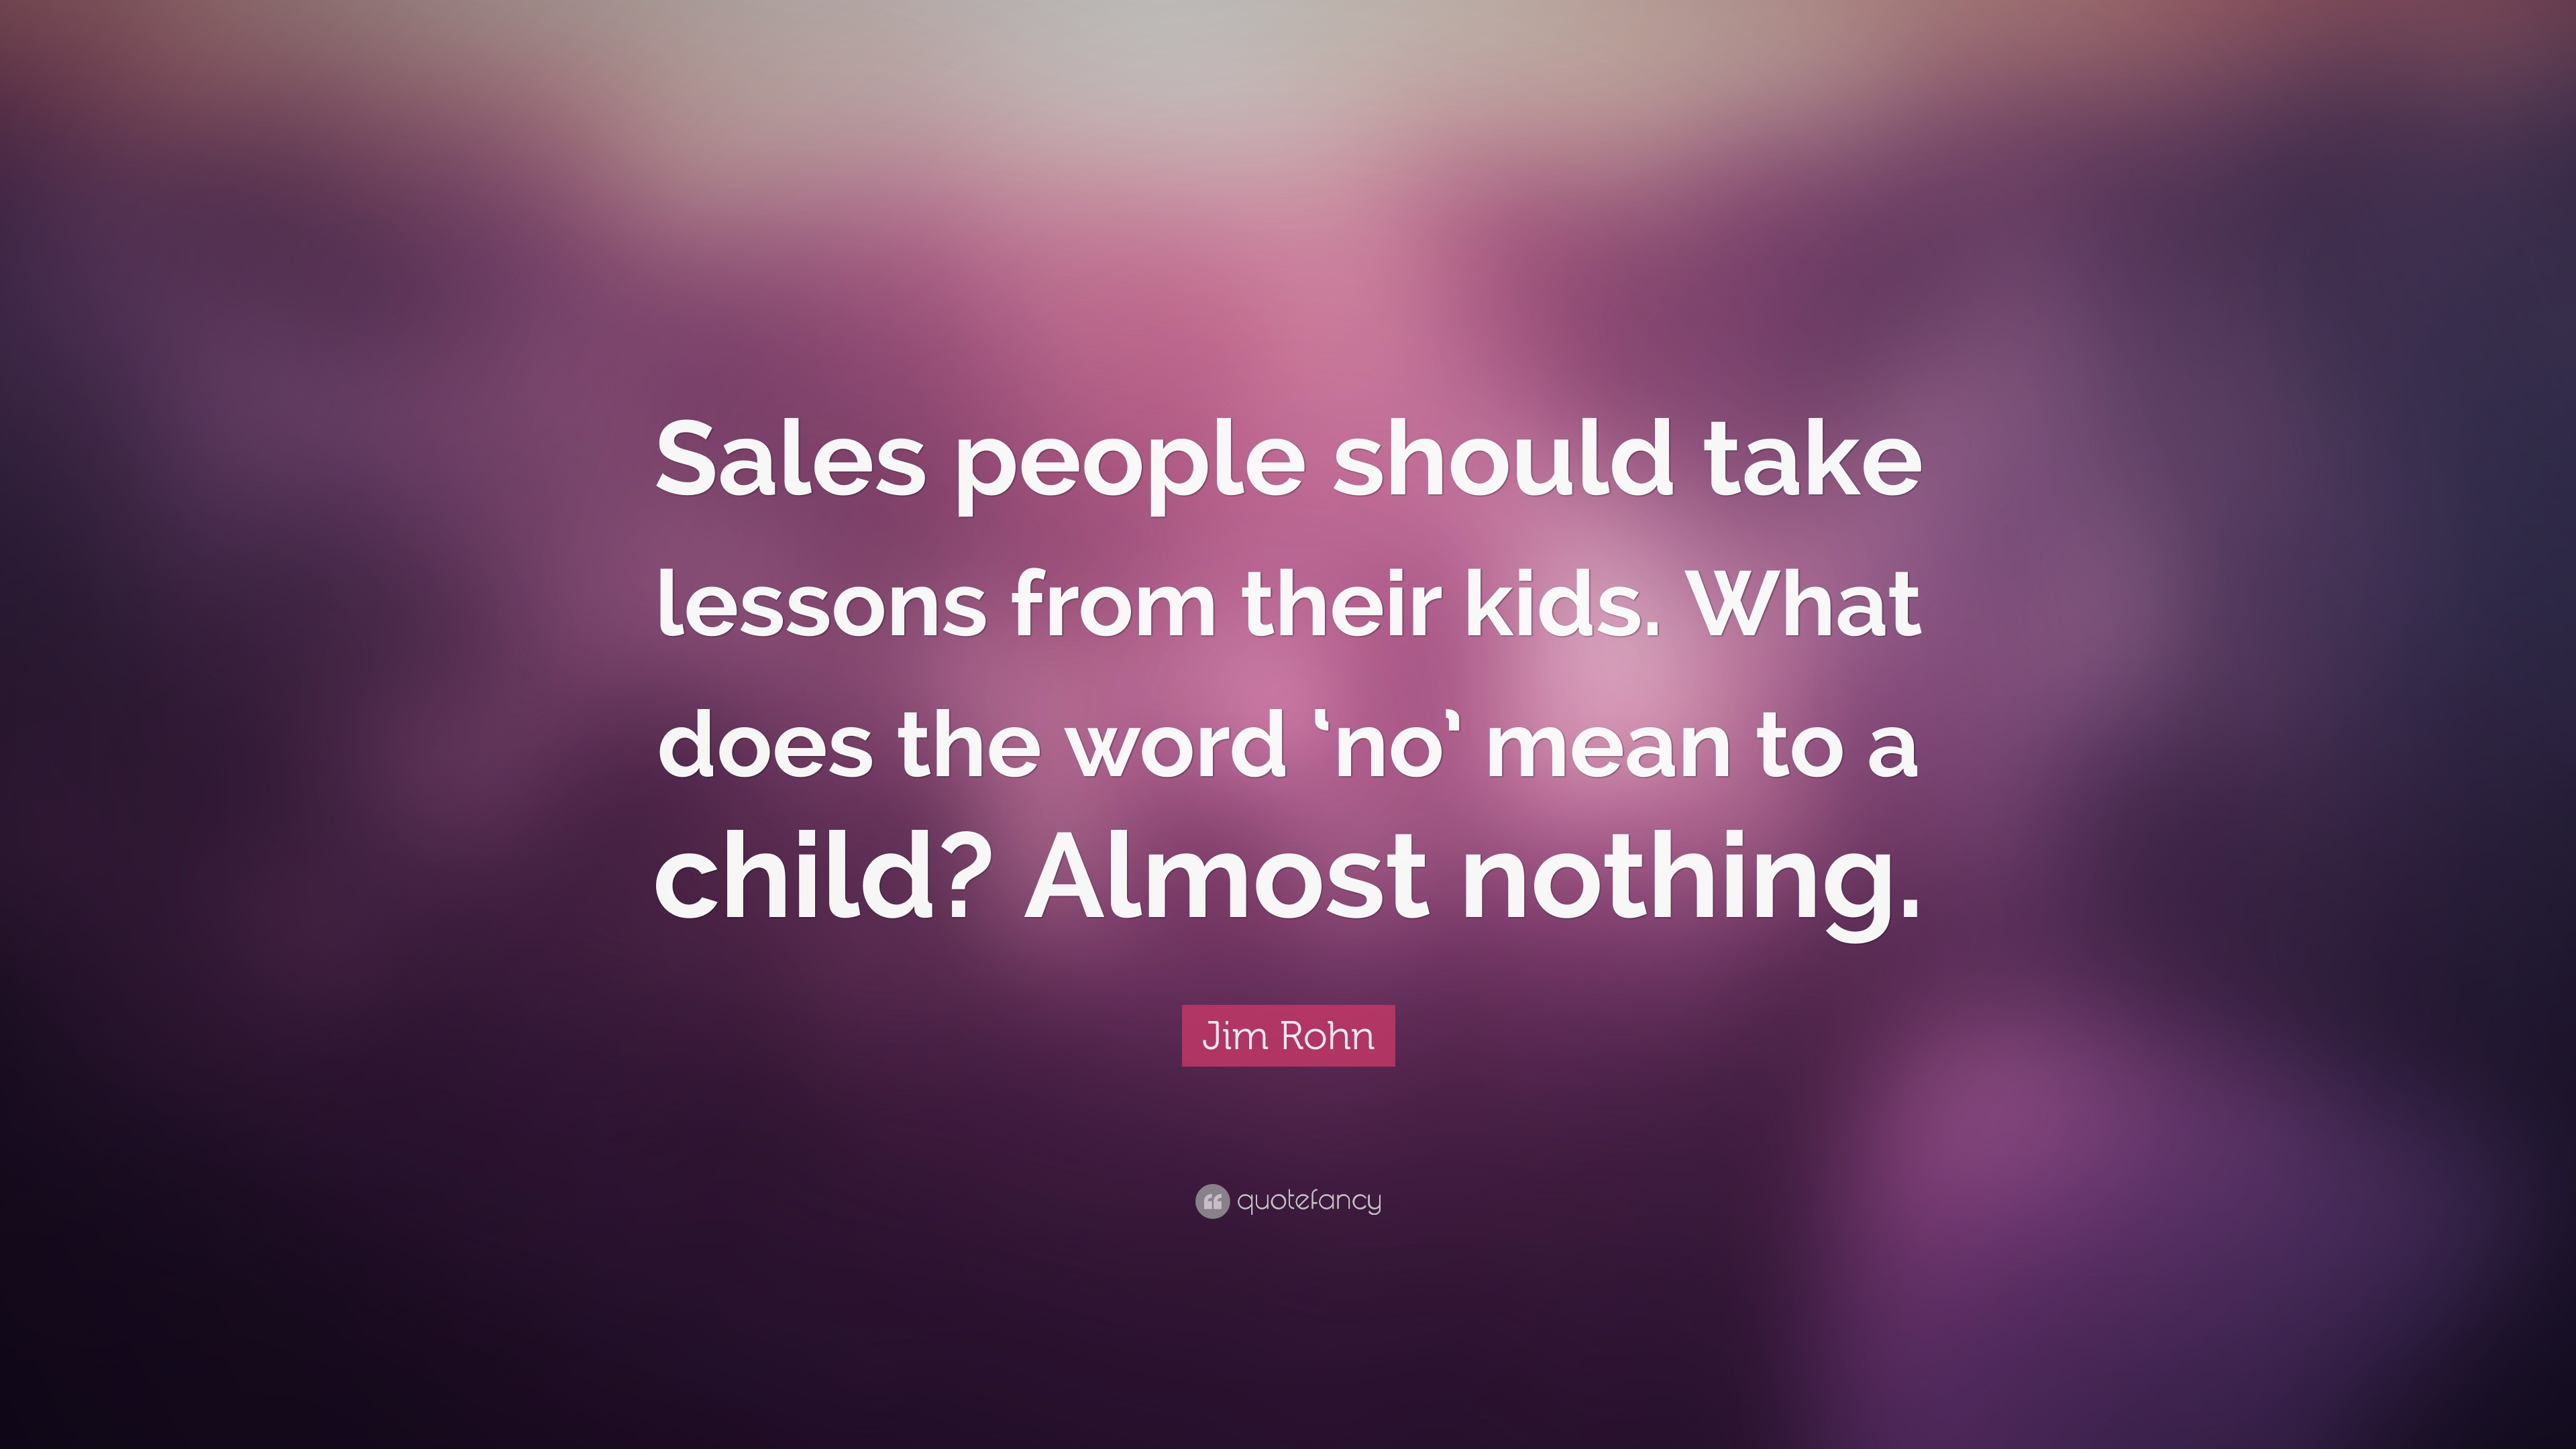 jim rohn quote sales people should take lessons from their kids